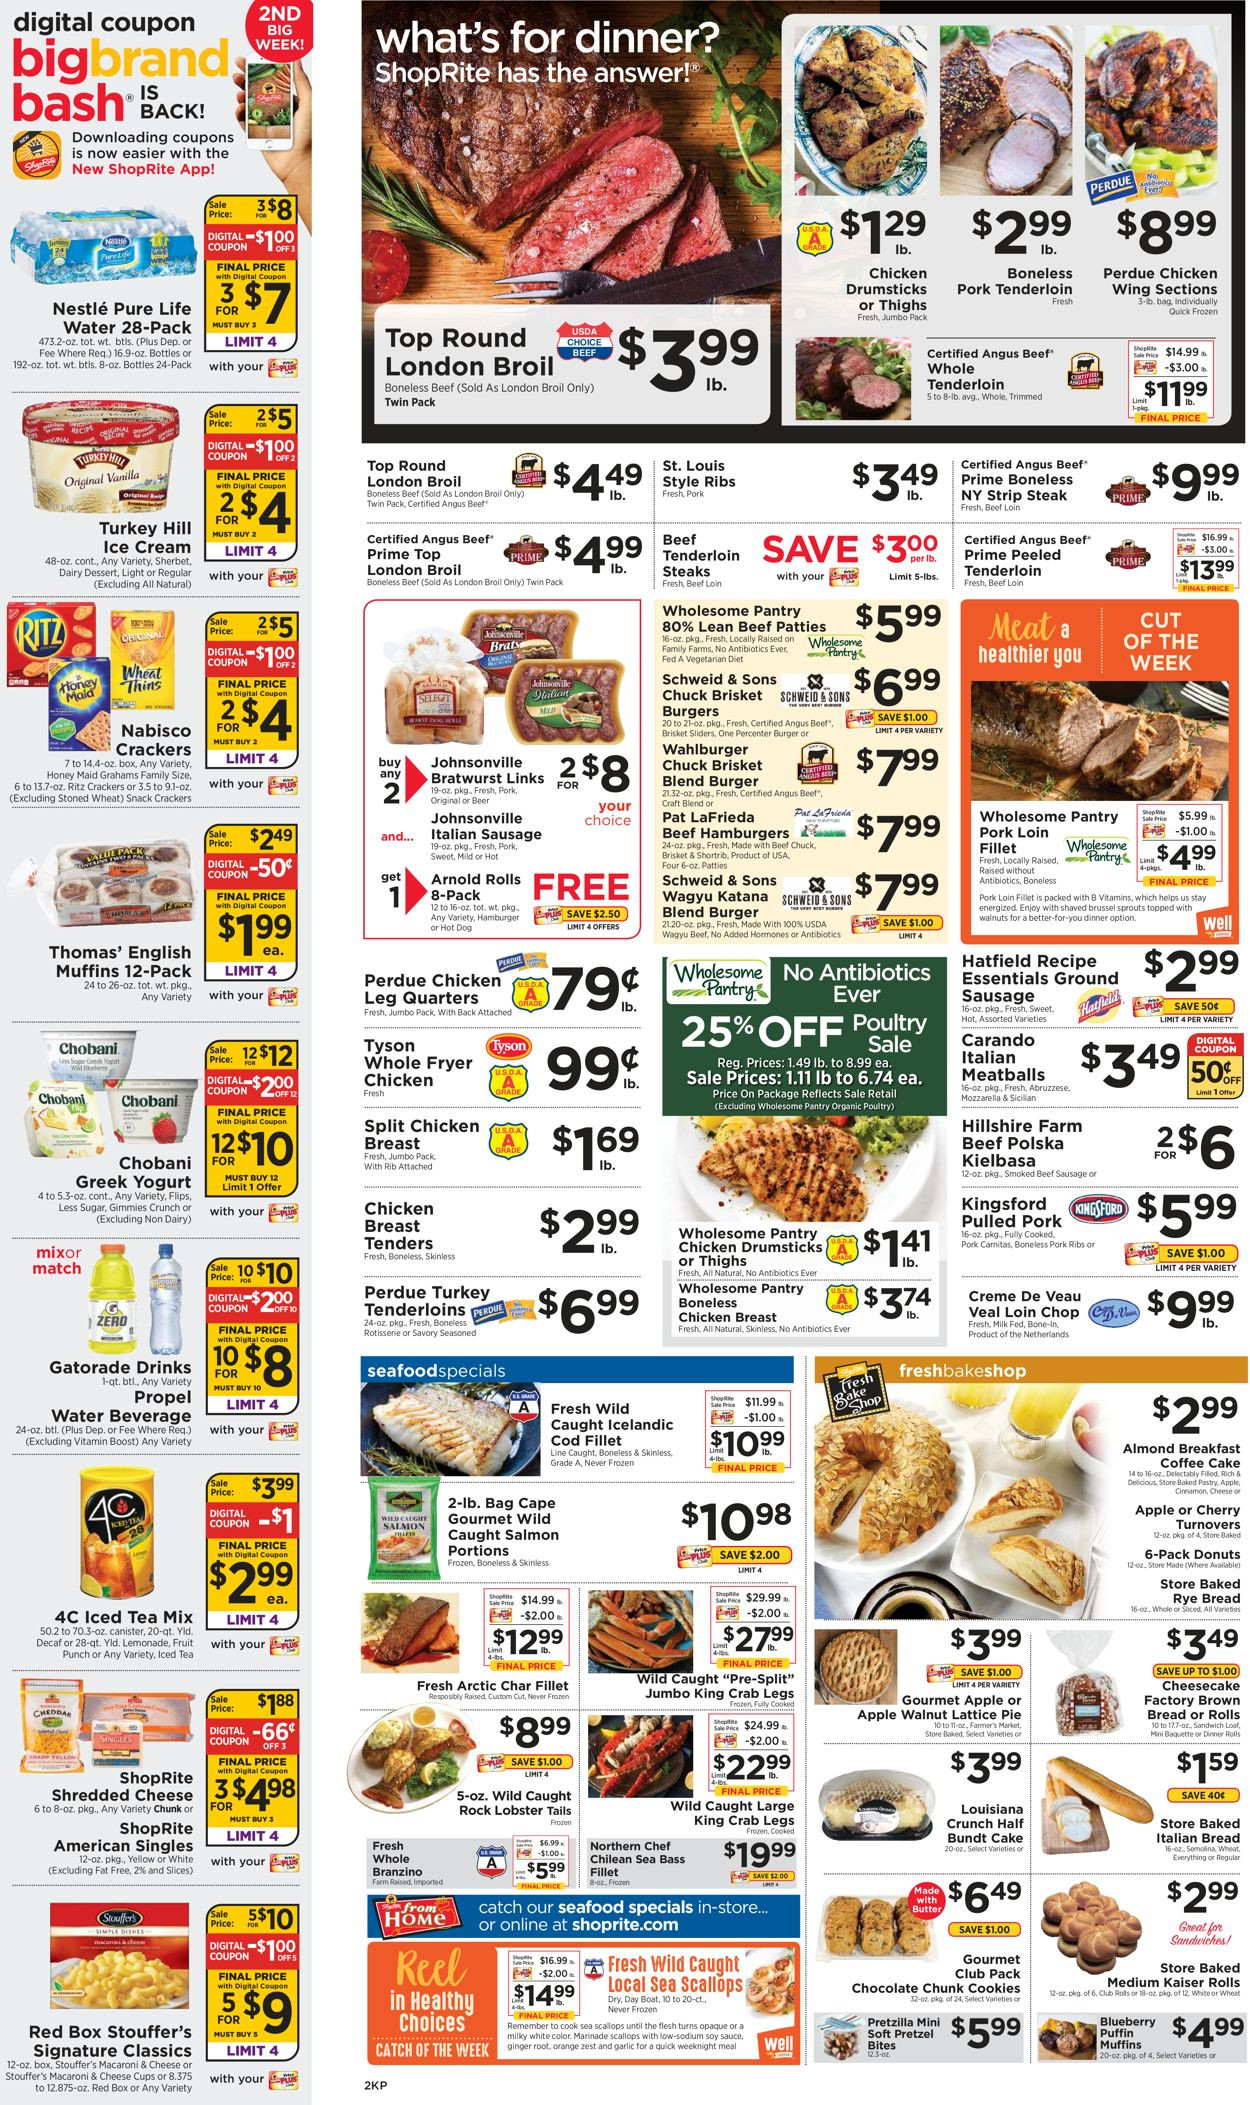 Shoprite Thanksgiving Dinner 2019  ShopRite Current weekly ad 06 09 06 15 2019 [2] weekly